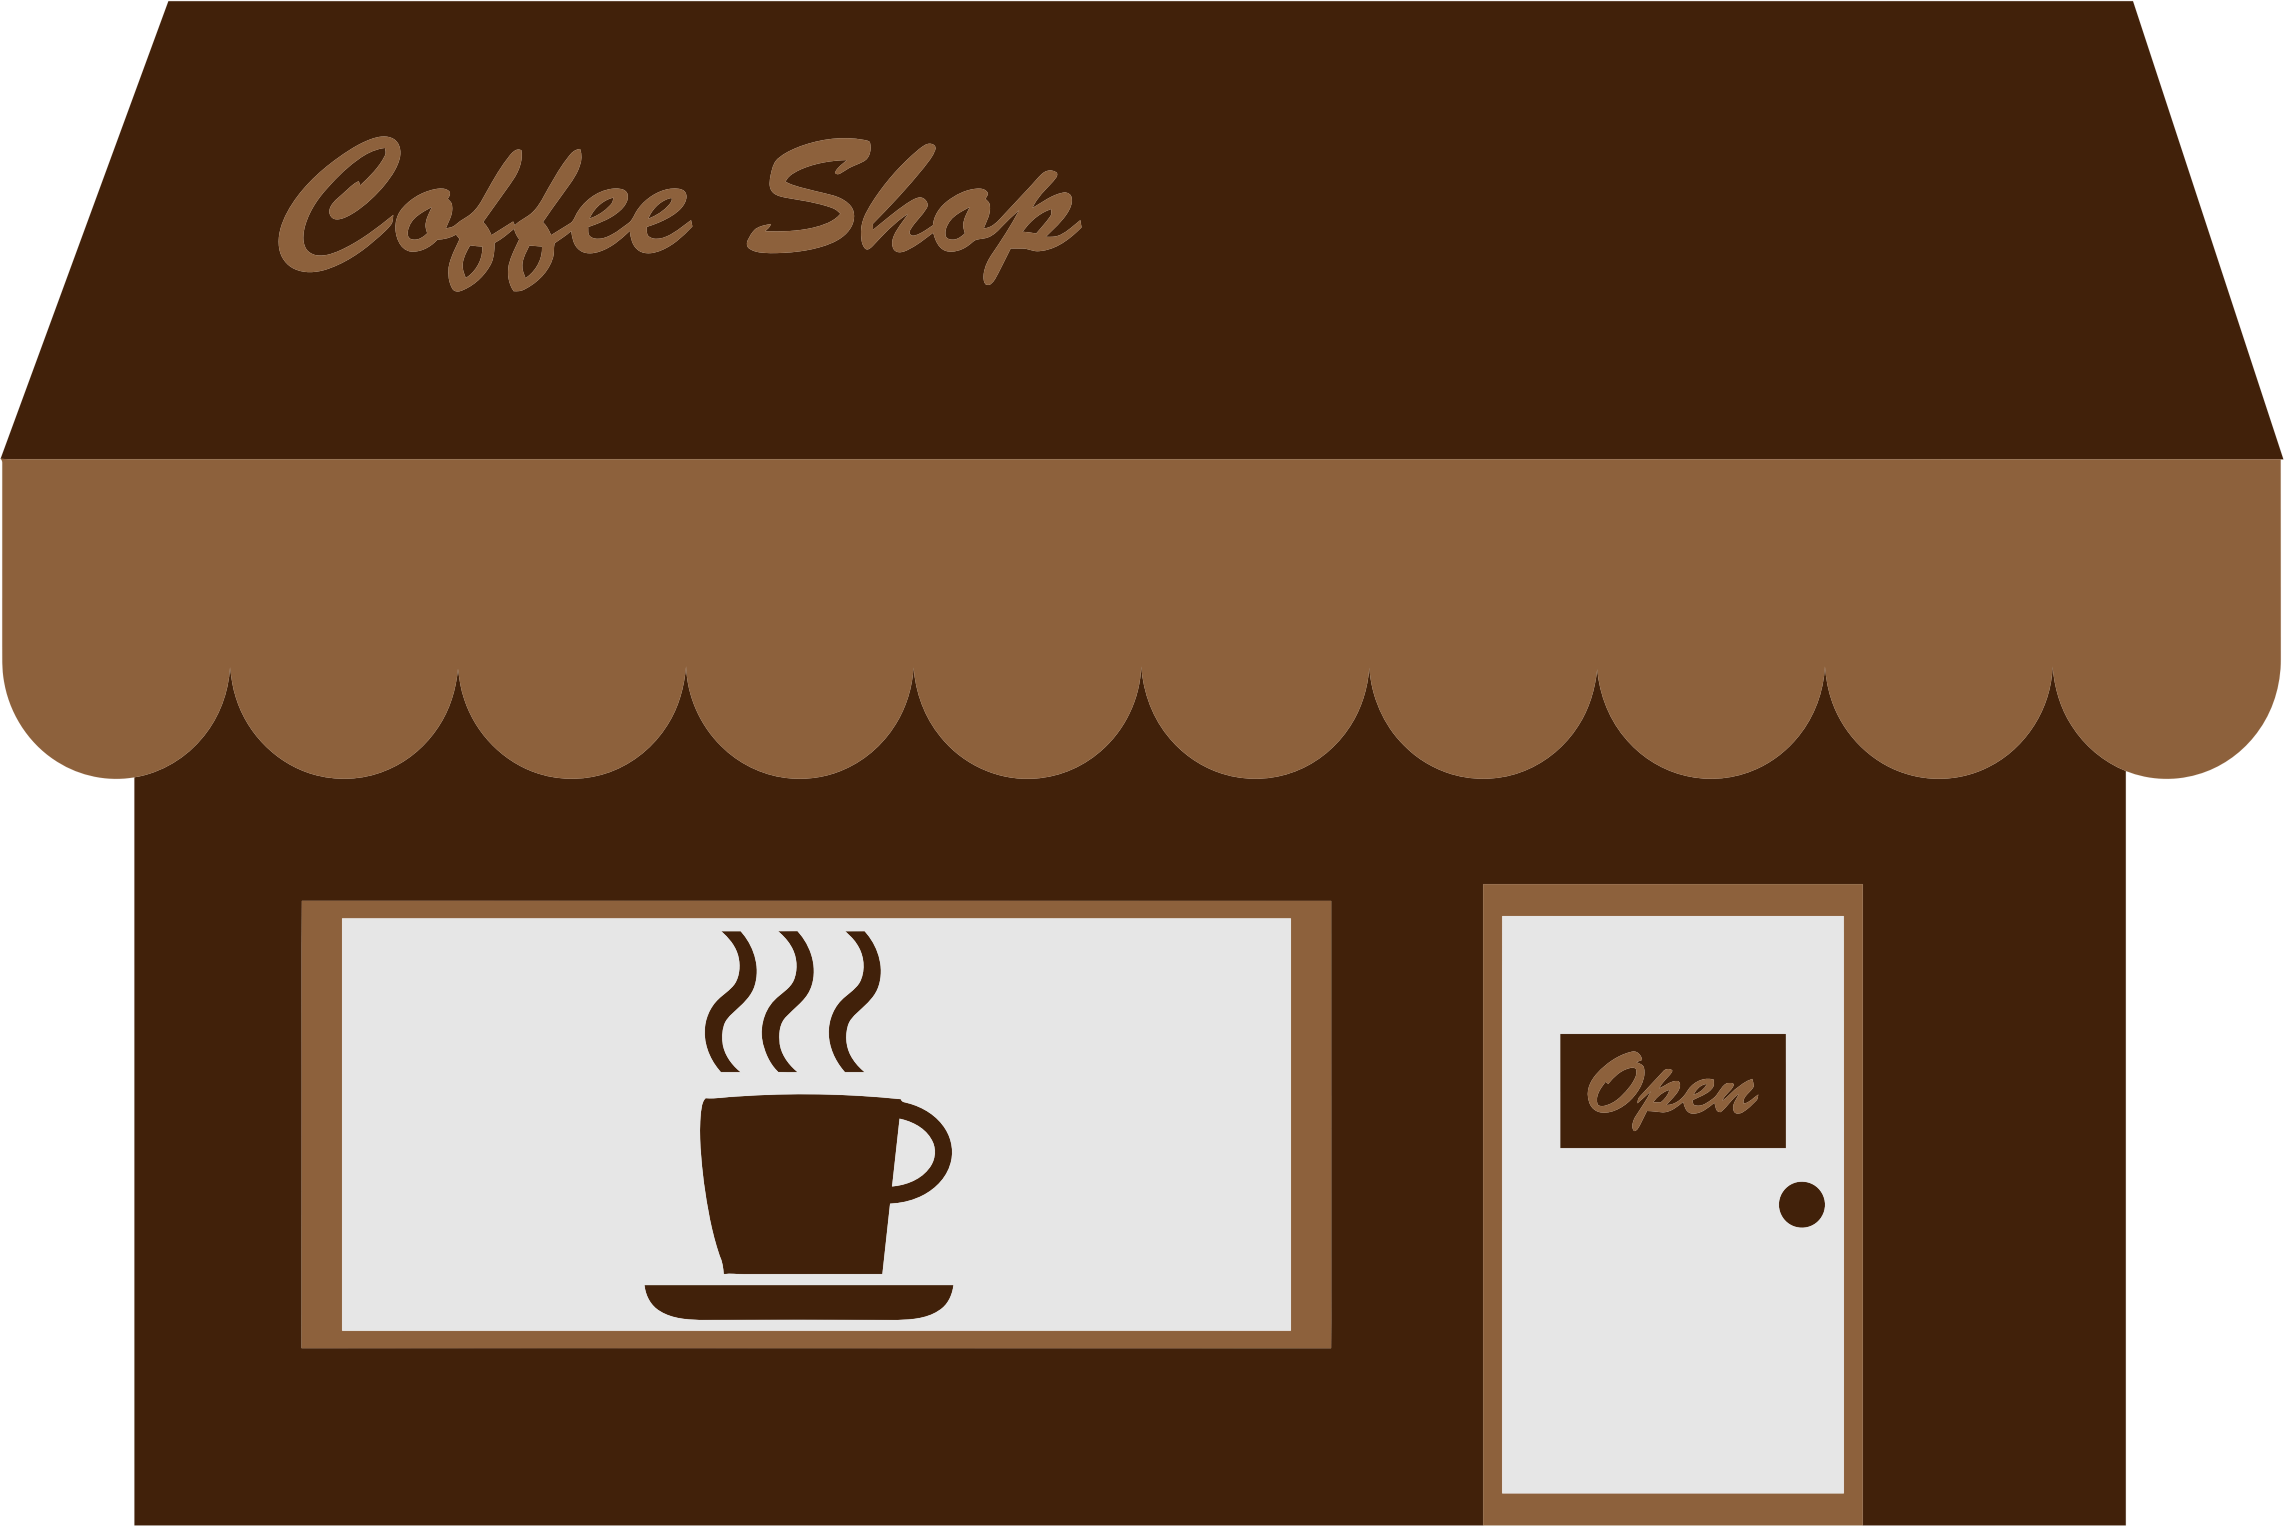 Cafe clipart storefront. Coffee shop anyone pinterest